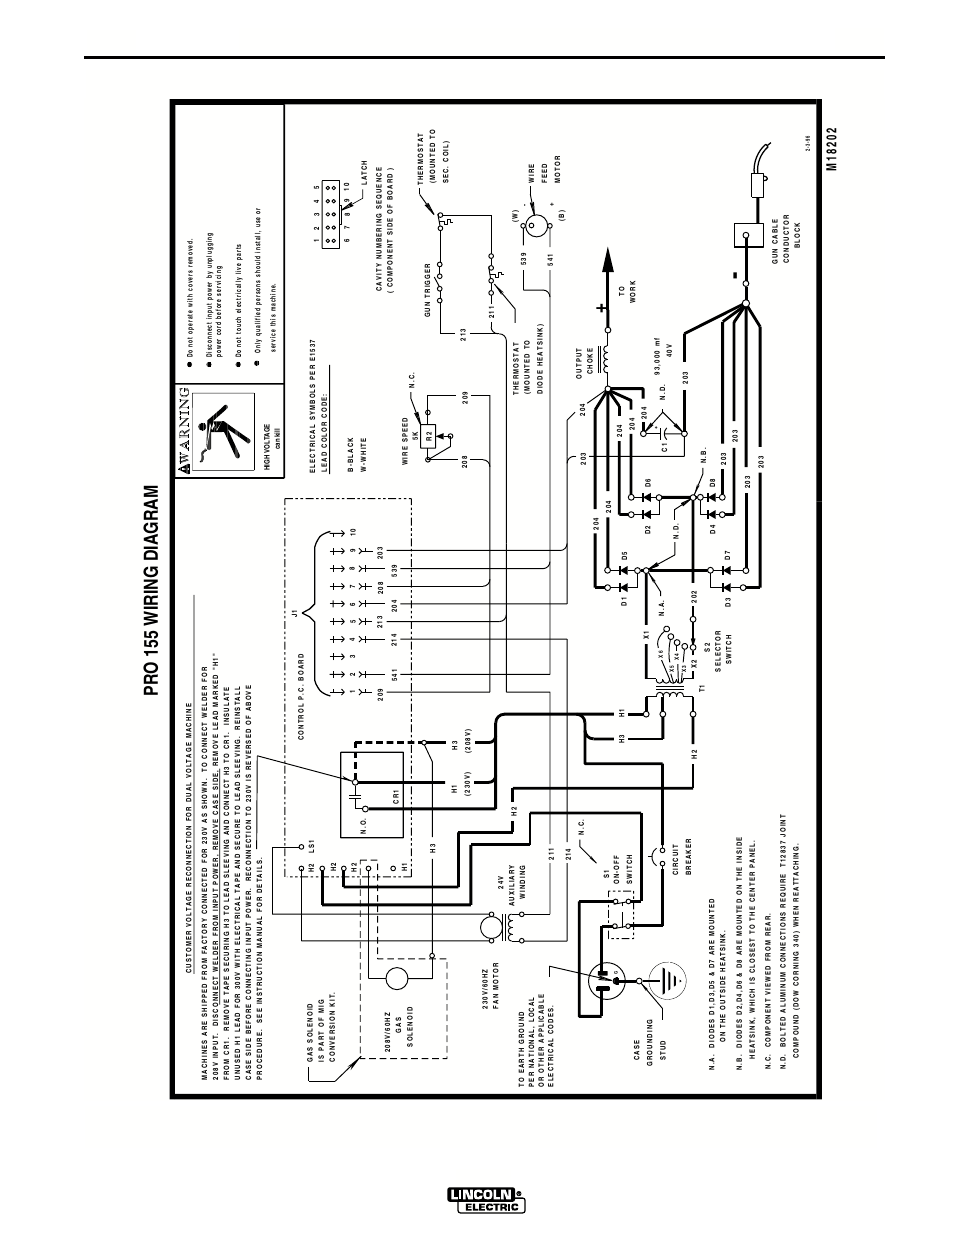 Lincoln 140c Mig Welder Wiring Diagram. Lincoln. Auto